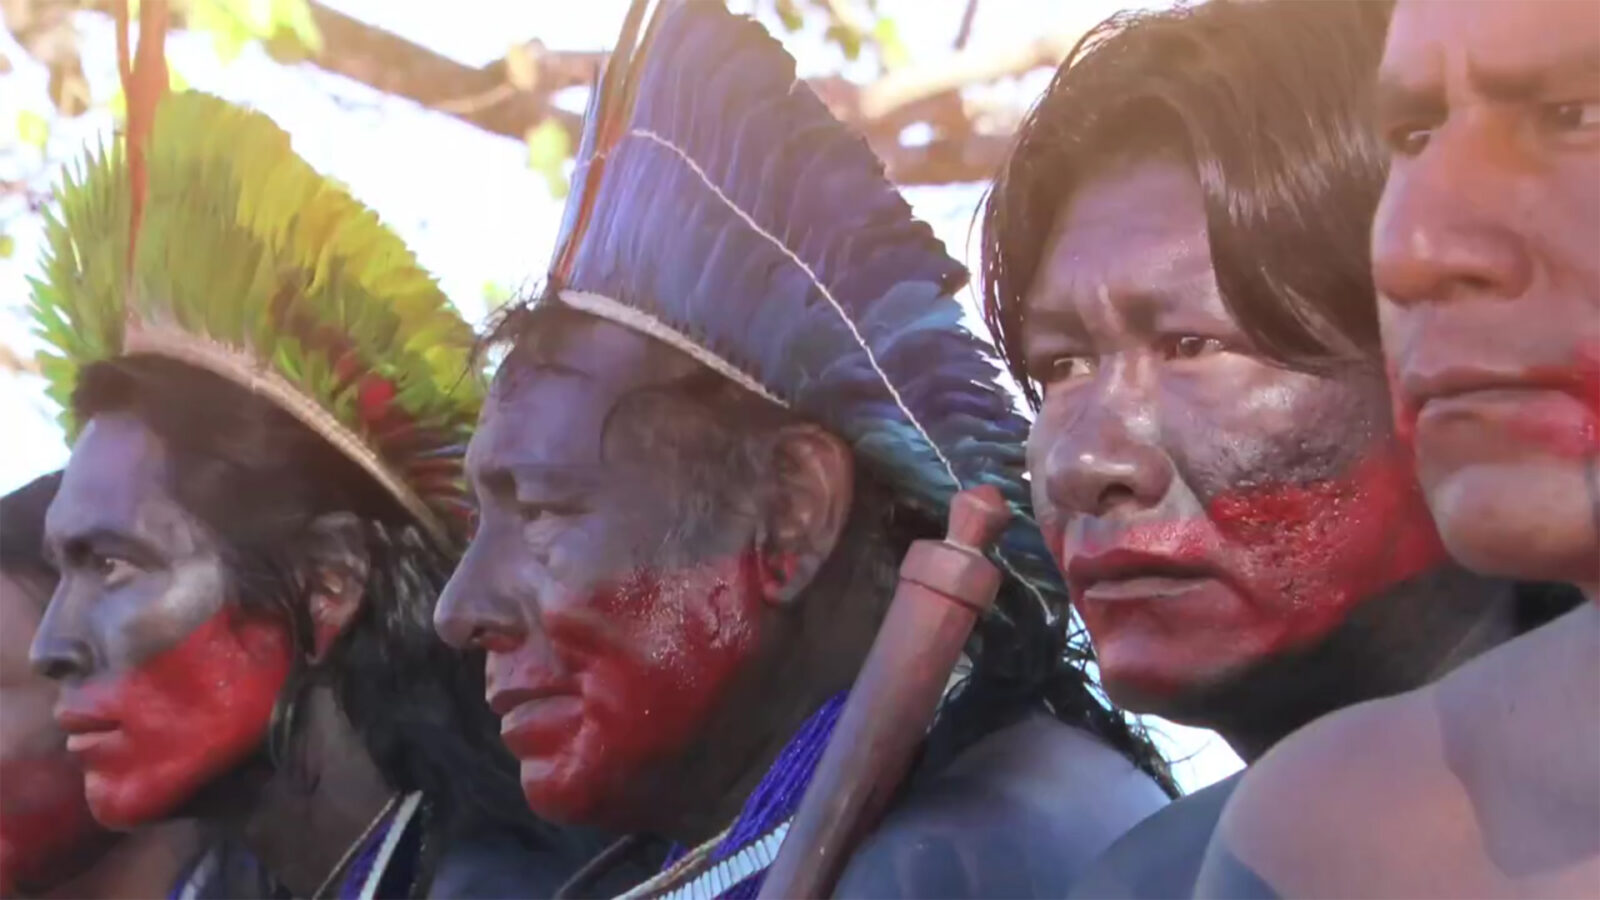 Amazonian peoples protecting forest